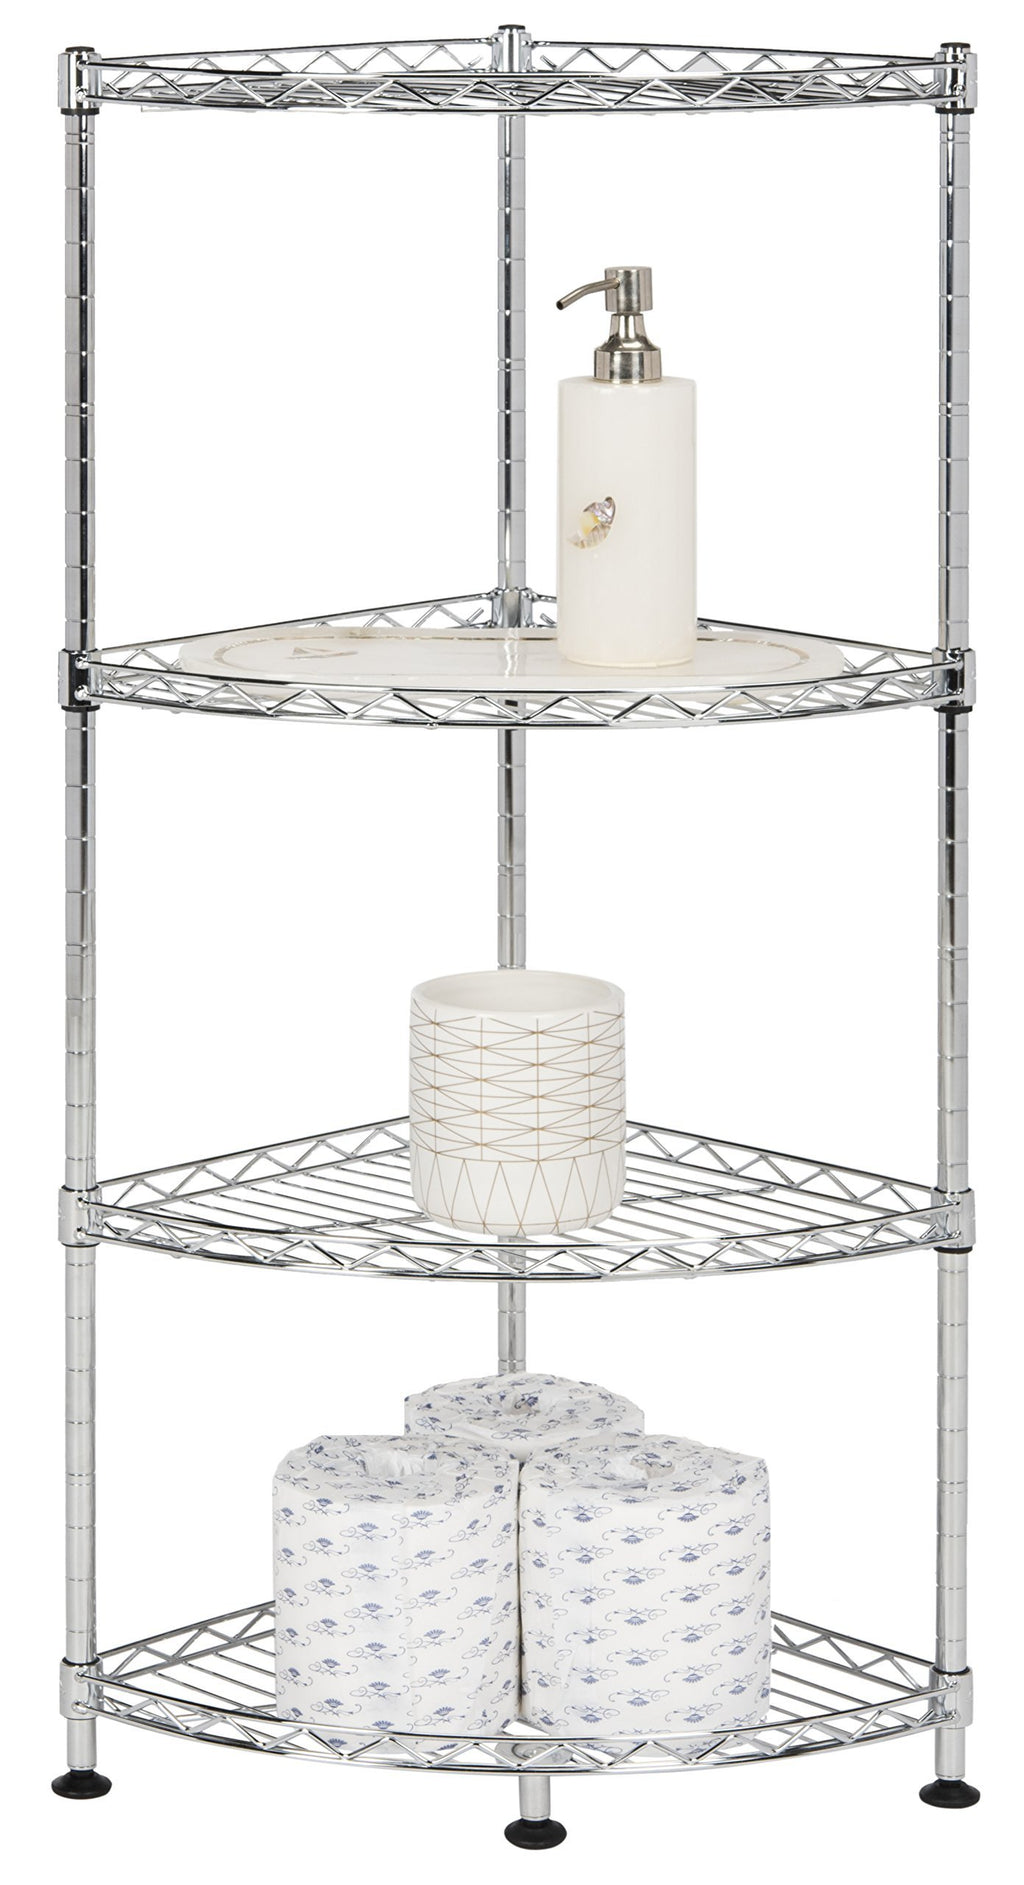 happimess Aleah 4-Tier Corner Storage Rack, Chrome